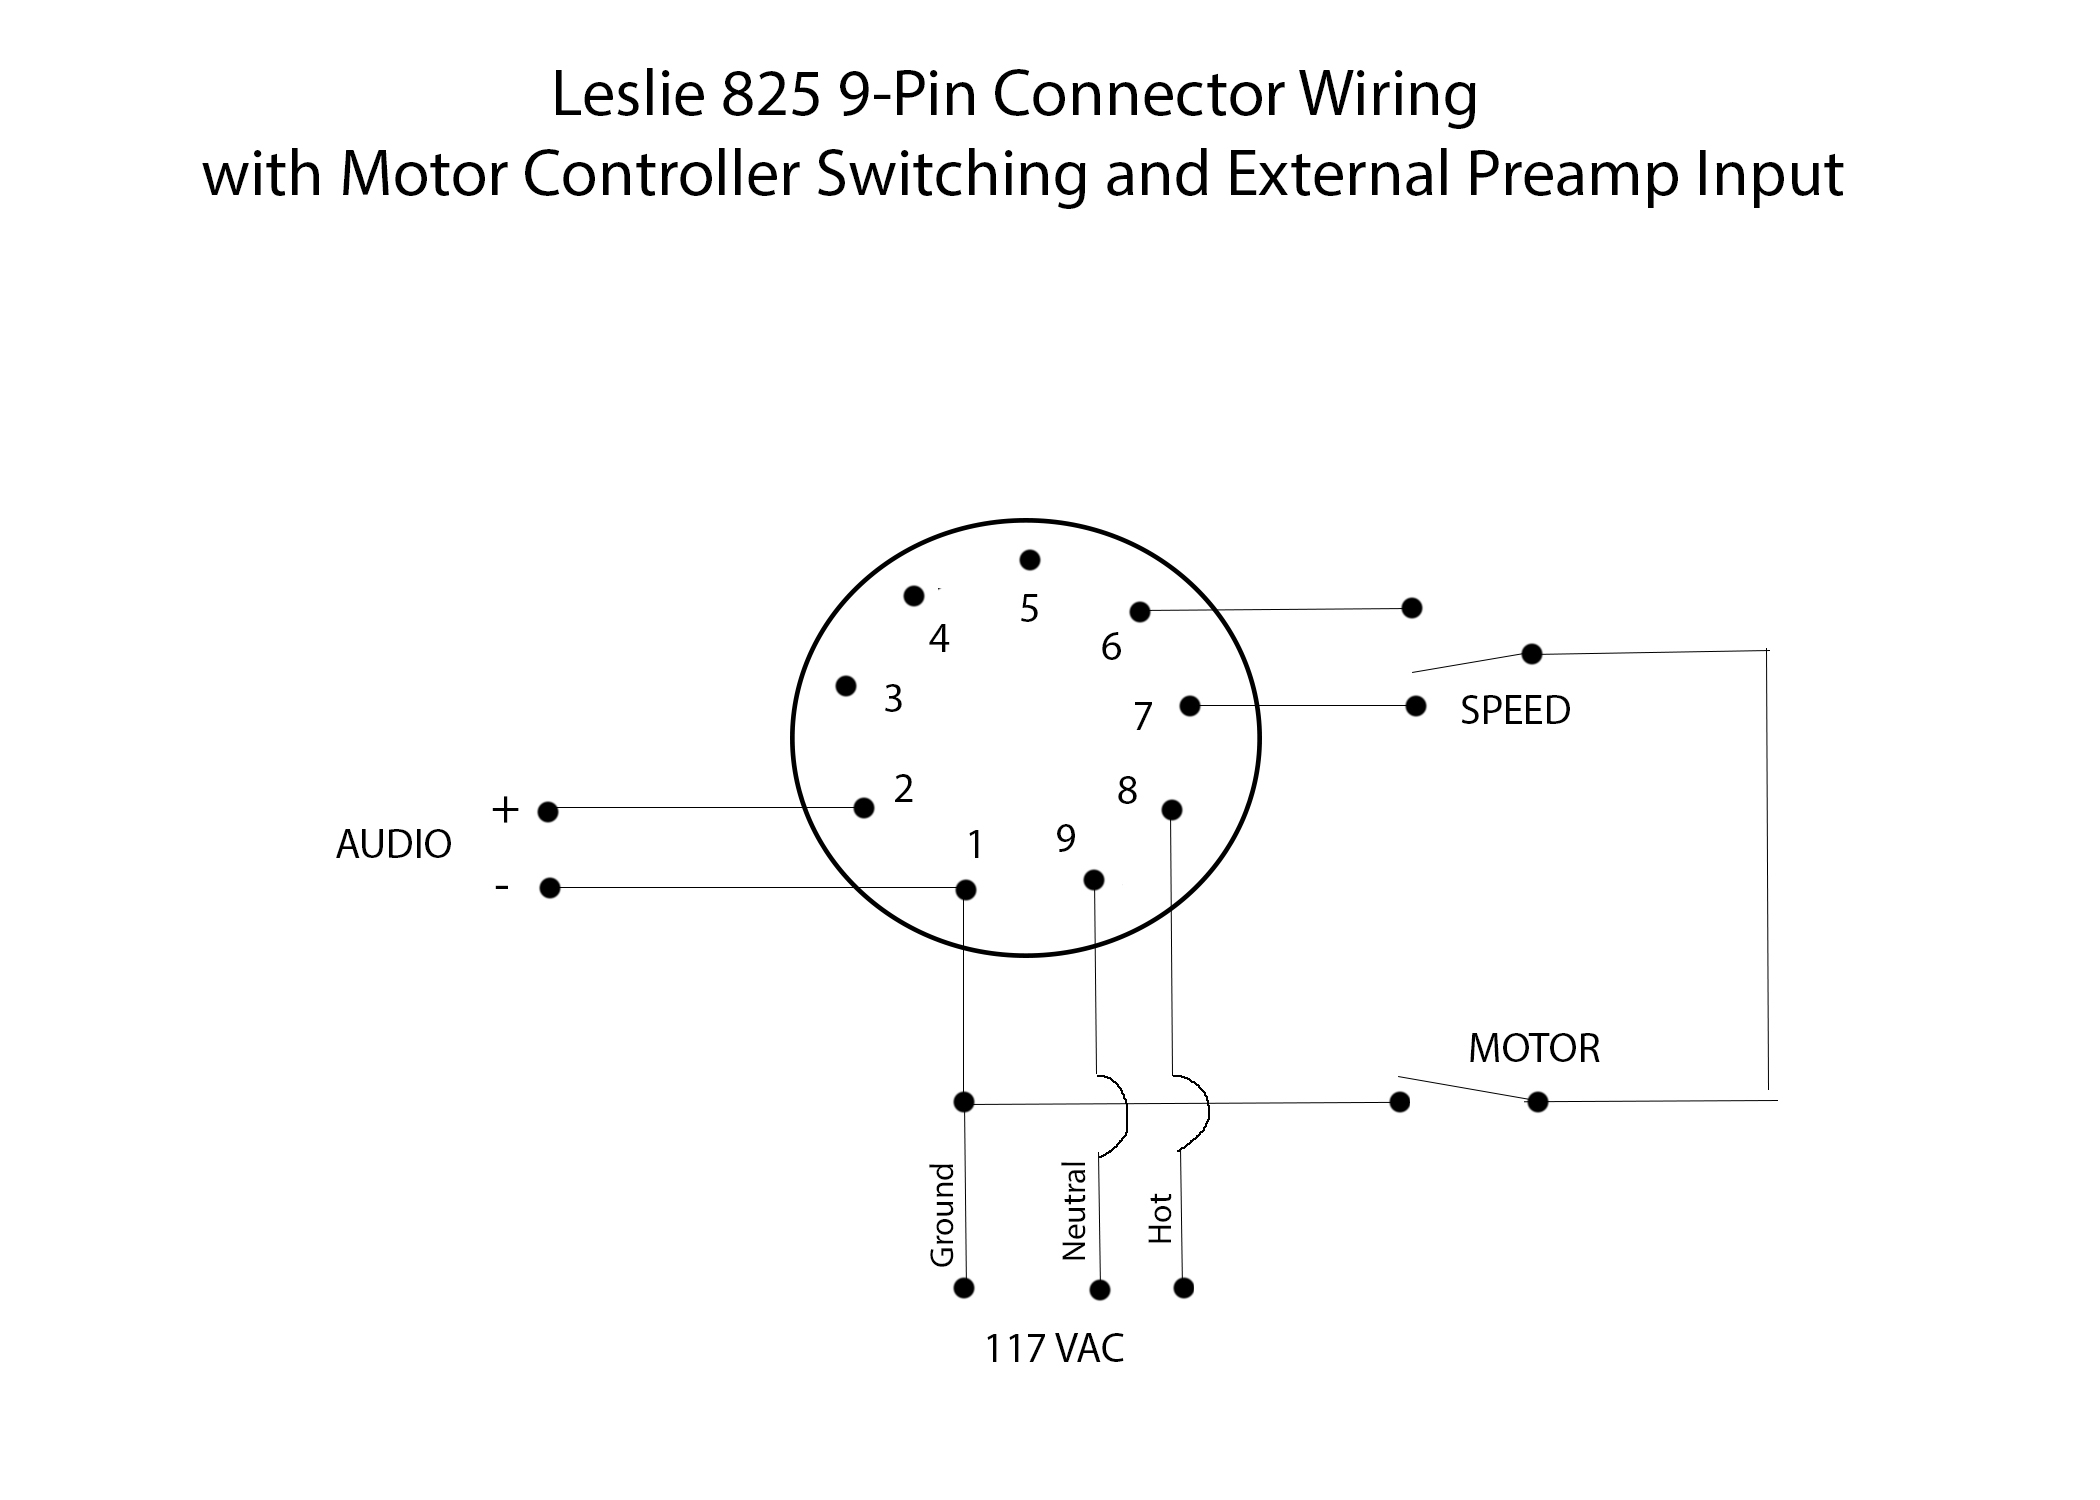 hammond speaker ground wire diagram leslie 825 9 pin connector wiring with motor controller switching  leslie 825 9 pin connector wiring with